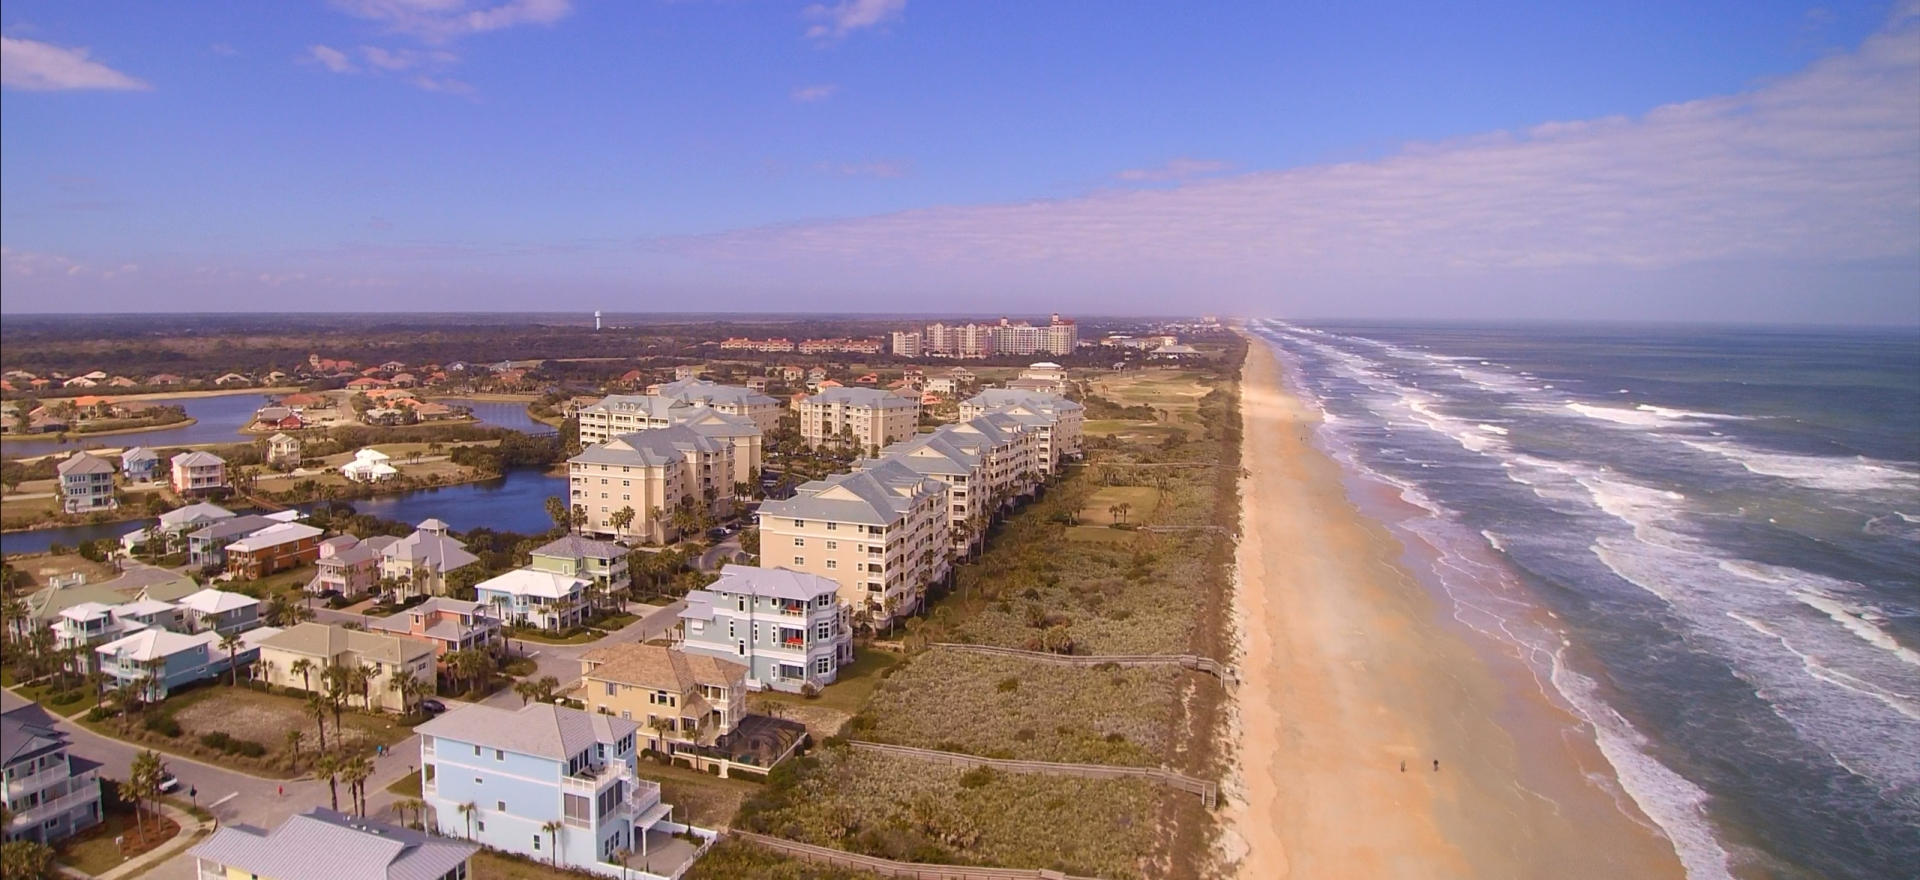 Cinnamon Beach Vacation Rentals Your Source For The Very